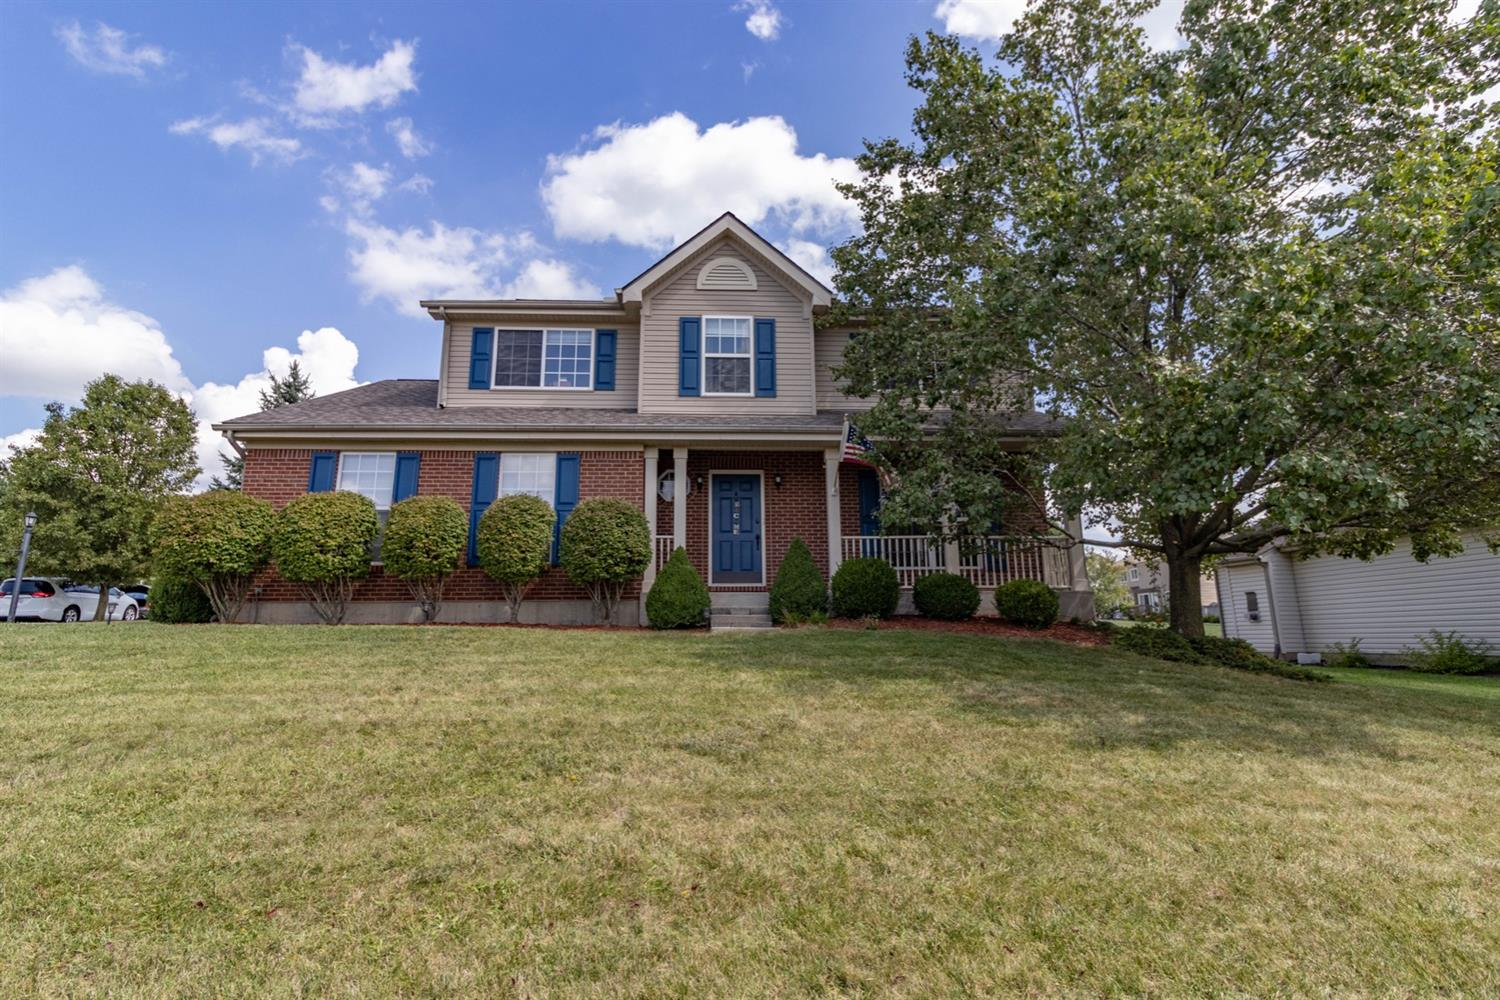 155 Old Carriage Court, Monroe, Ohio 45050, 4 Bedrooms Bedrooms, 8 Rooms Rooms,3 BathroomsBathrooms,Single Family Residence,For Sale,Old Carriage,1715891